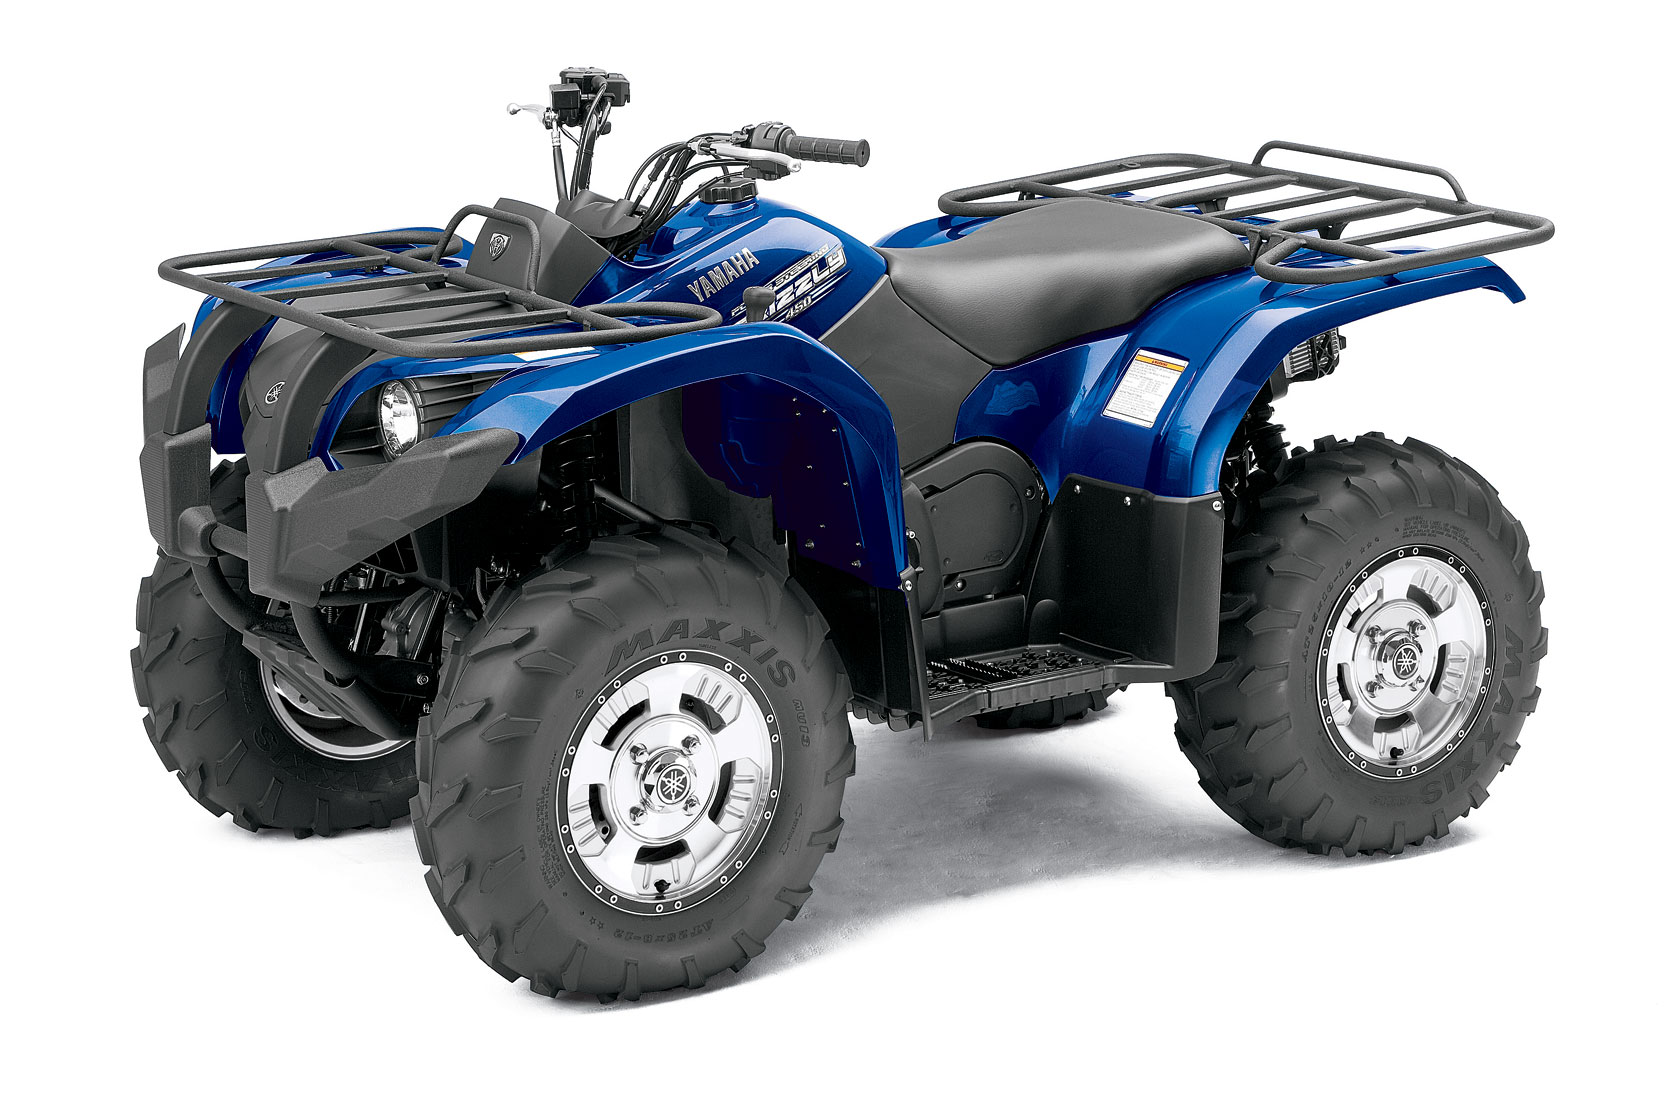 Yamaha Grizzly 450 >> 2011 Yamaha Grizzly 450 4x4 EPS